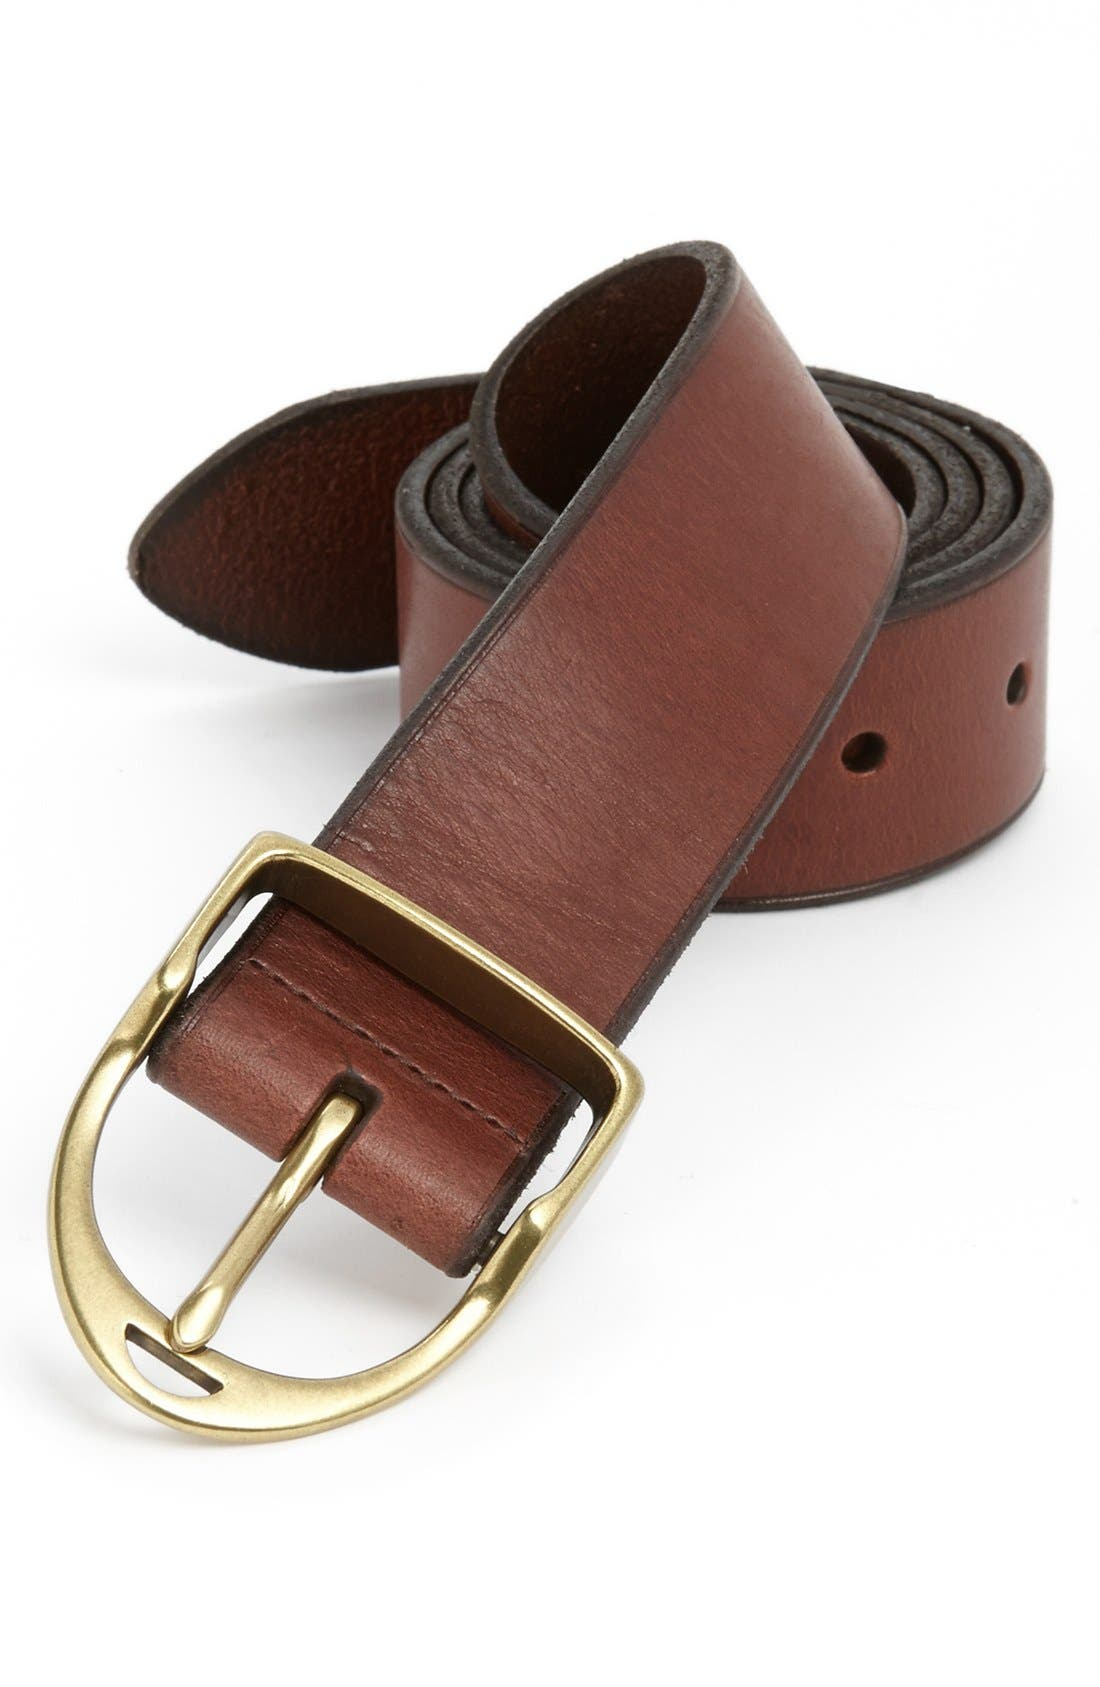 Main Image - Polo Ralph Lauren 'Wilton' Belt